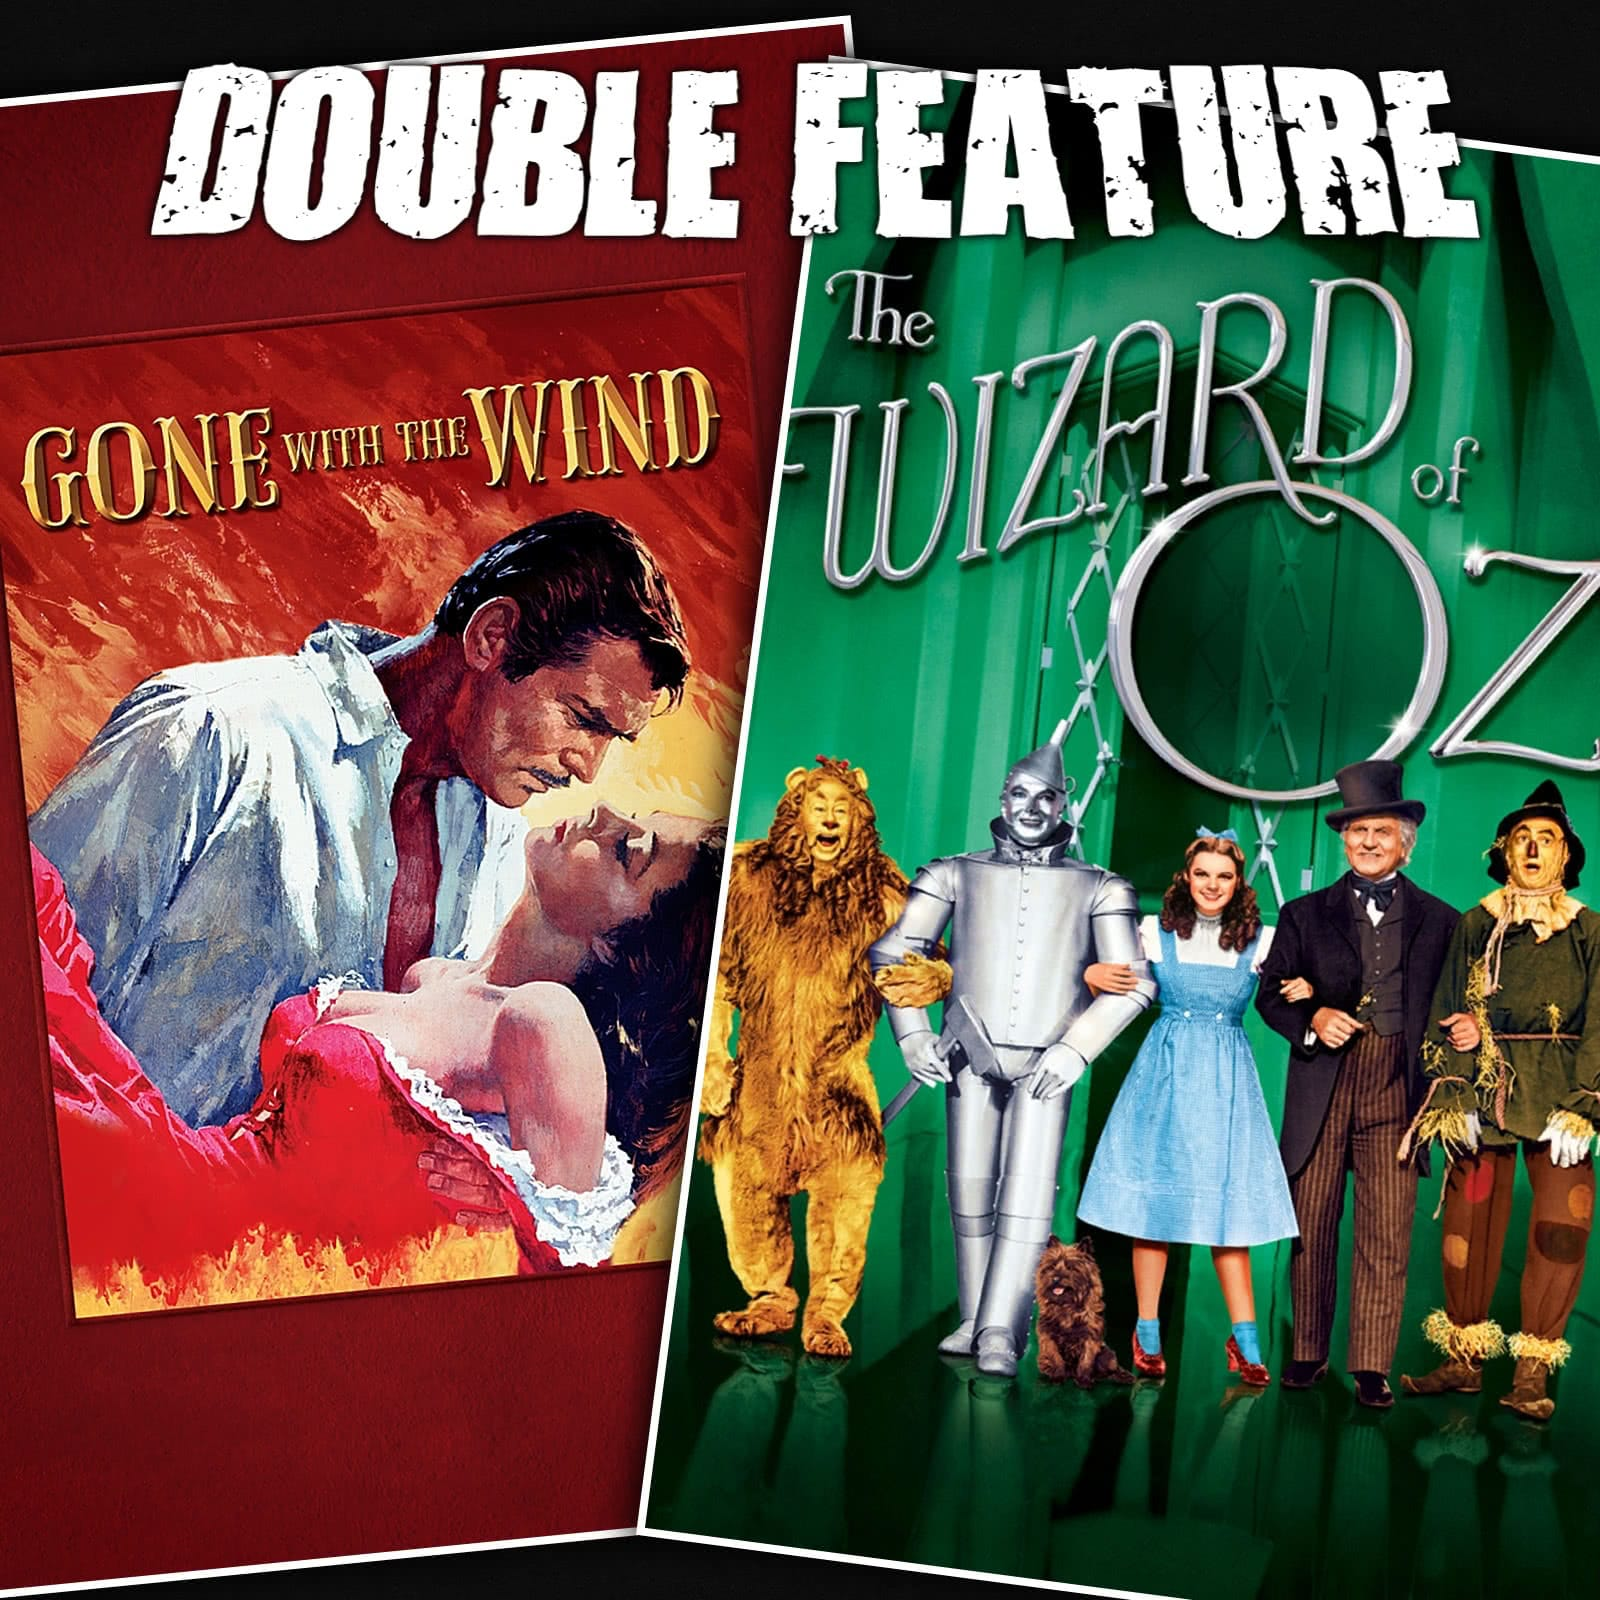 Behind the curtain wizard of oz - Image Of Wizard Oz Behind The Curtain